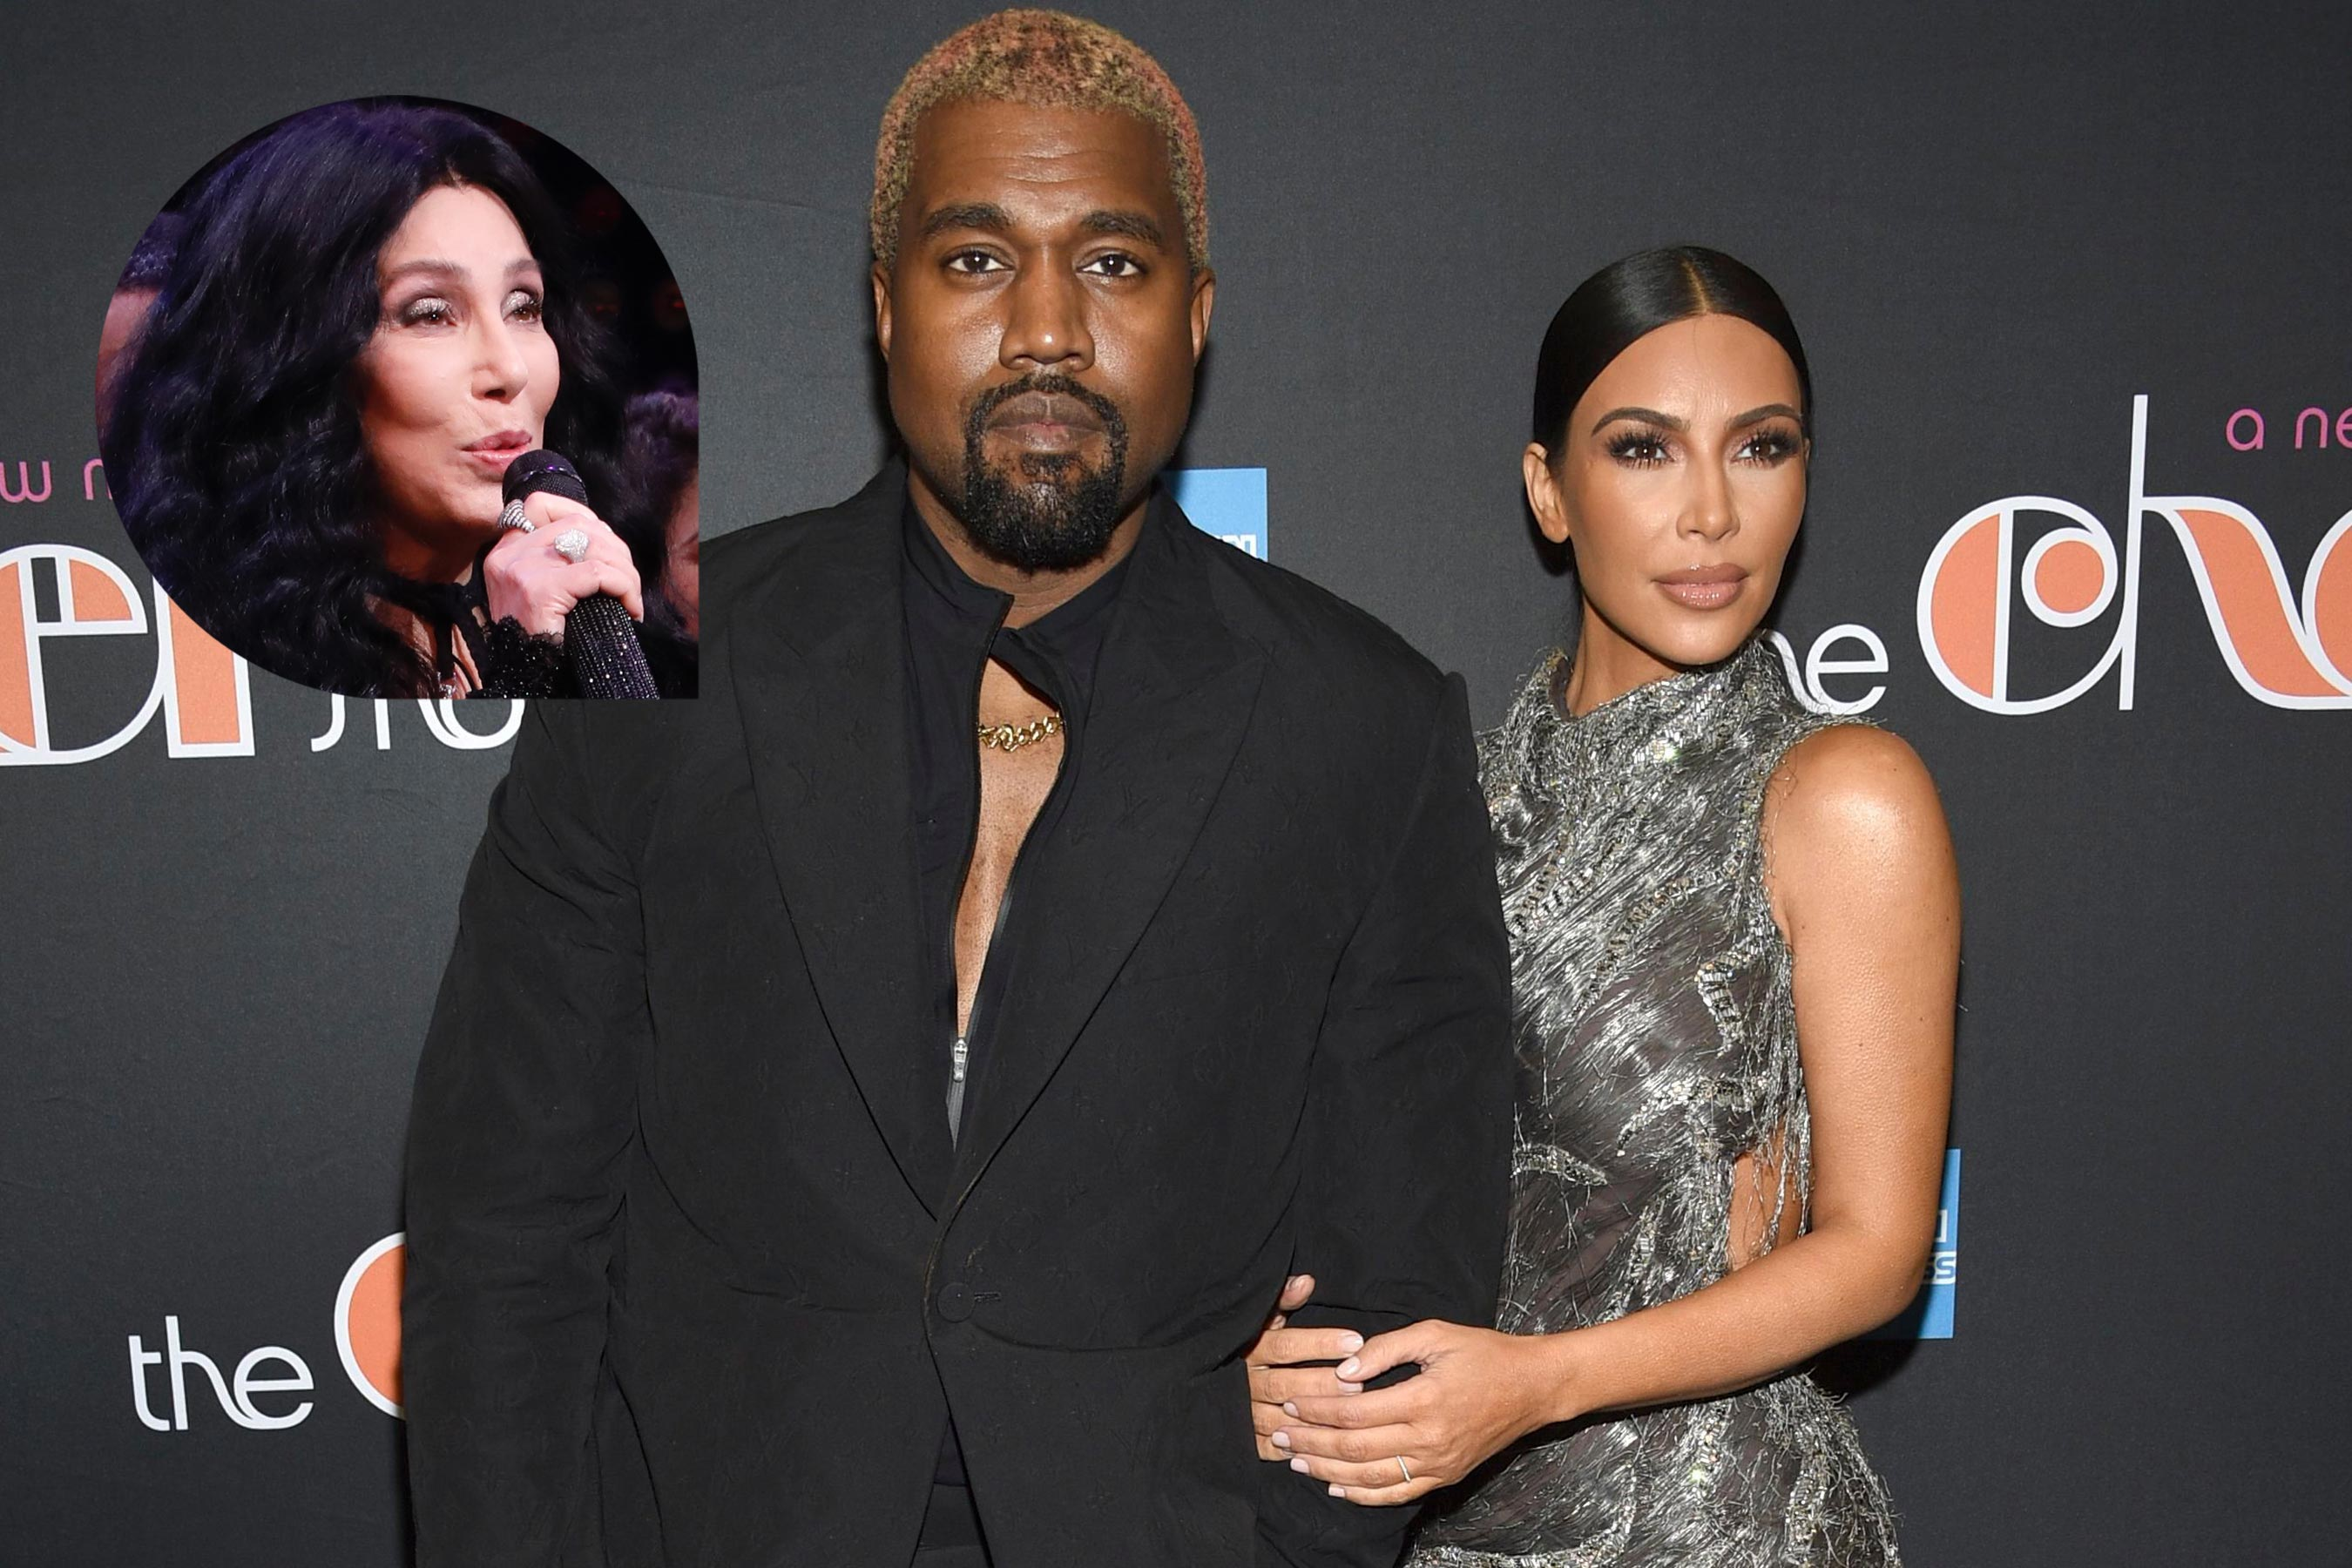 'The Cher Show': Kanye West apologizes after being caught on his phone